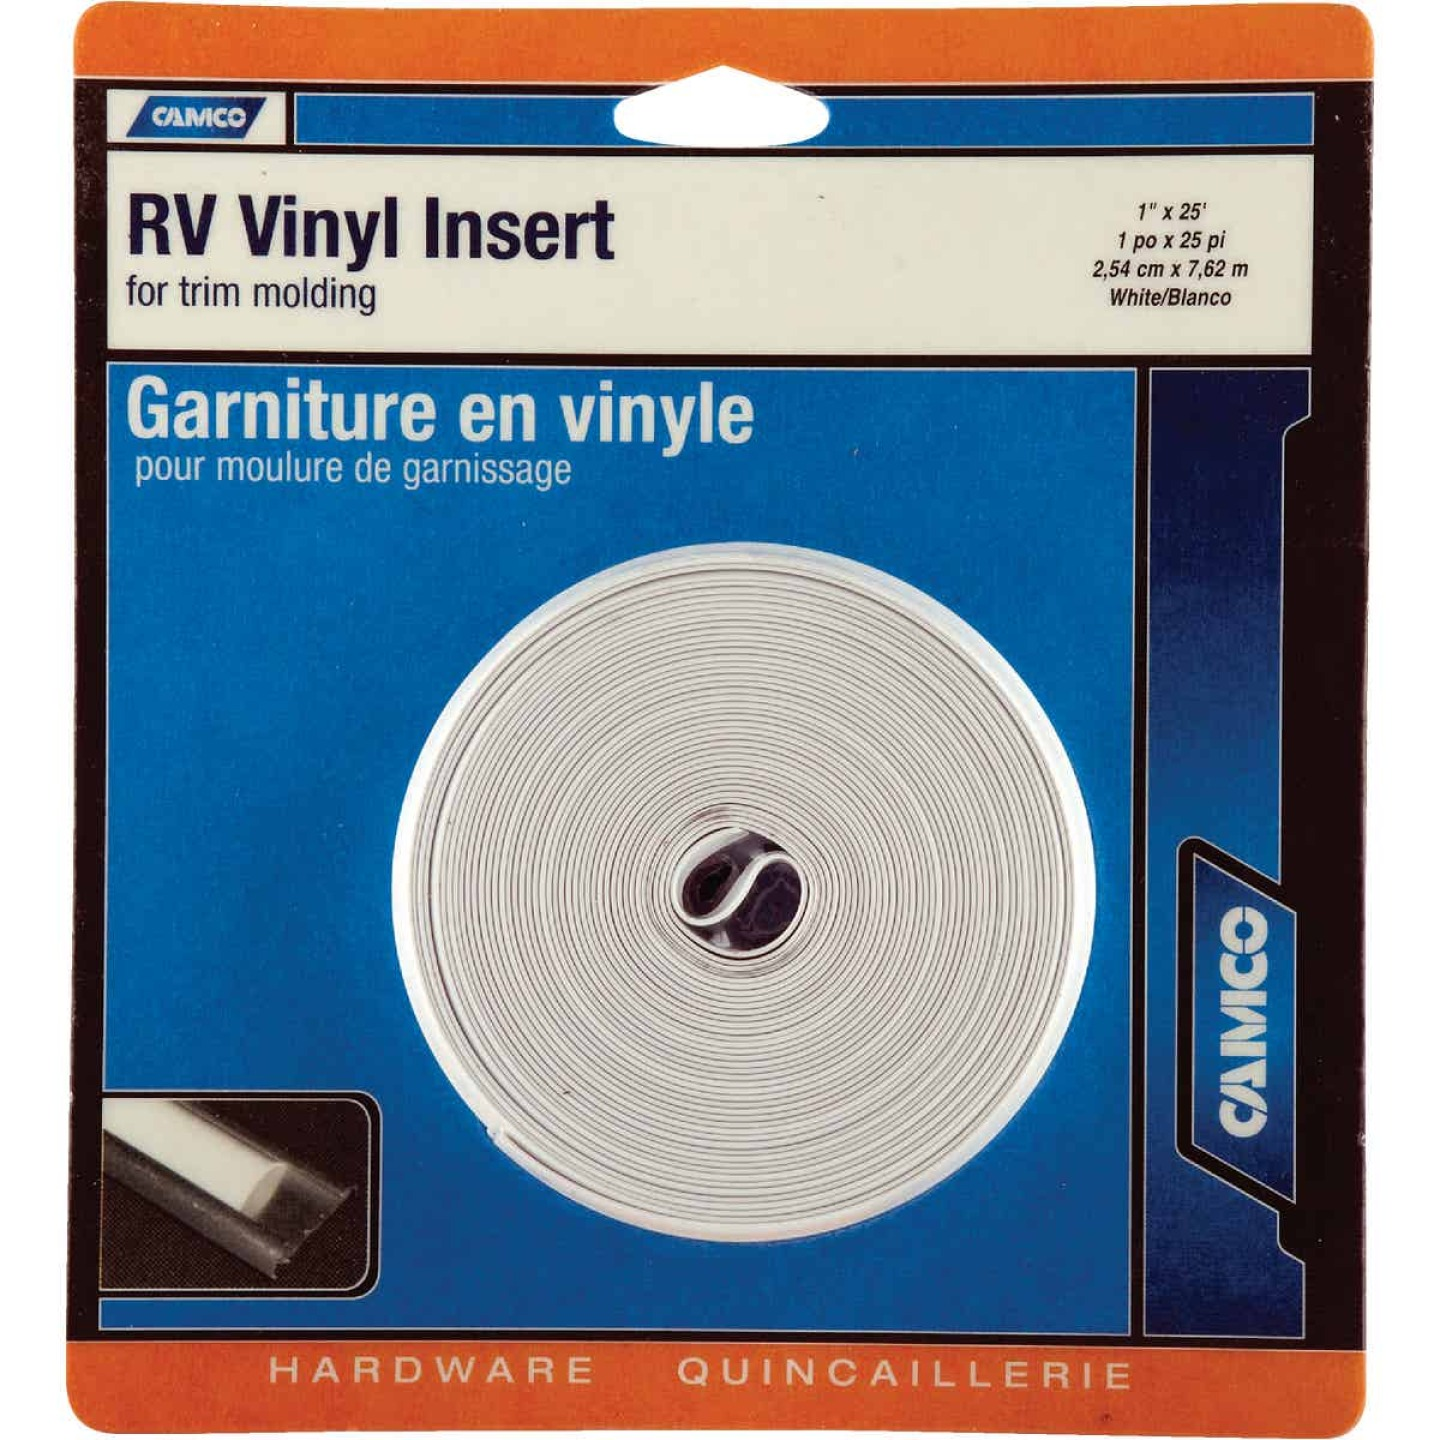 Camco 1 In. 25 Ft. UV Inhibitor RV Vinyl Trim Image 2